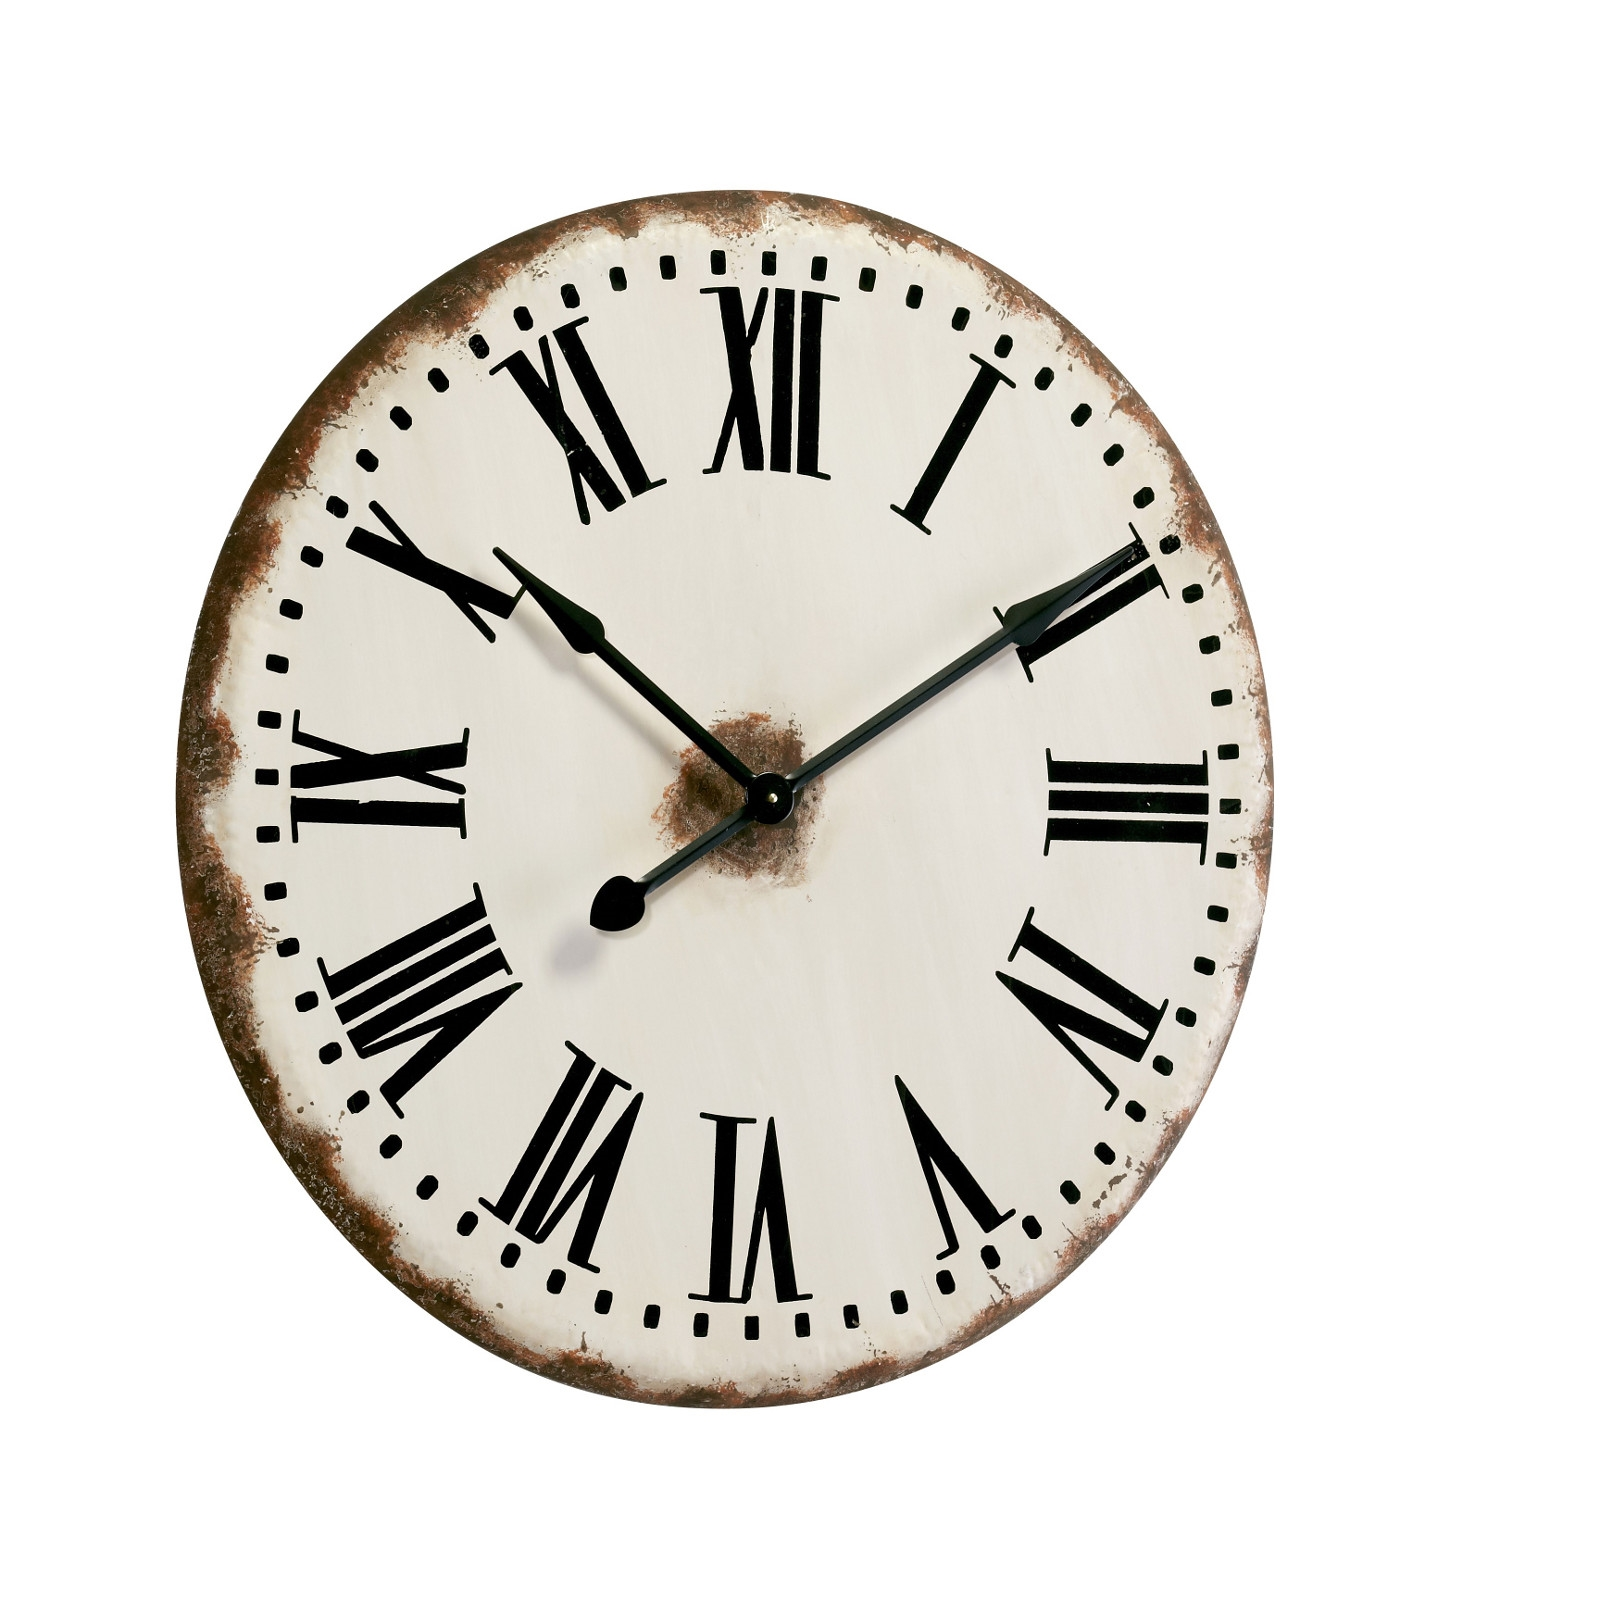 Wall Clock Design Template : Vintage design metal train station clock ? cm wall